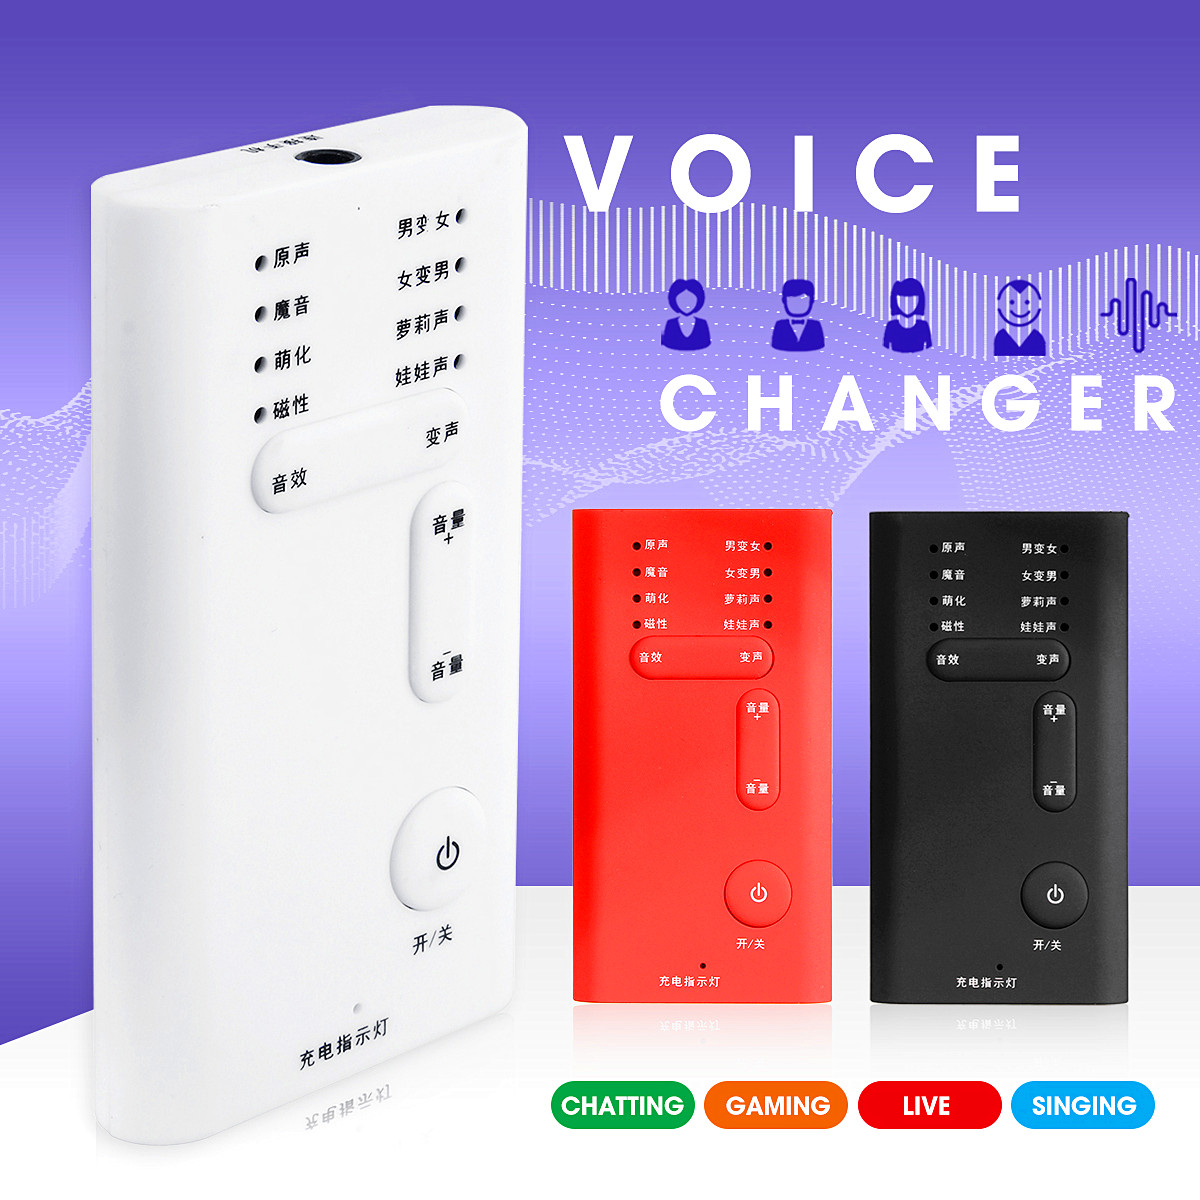 8 Voice Changing Modes Mobile Phone Voice Changer Mini Portable Handheld MIC Game Disguise Microphone Game Toys New Arrival 2019